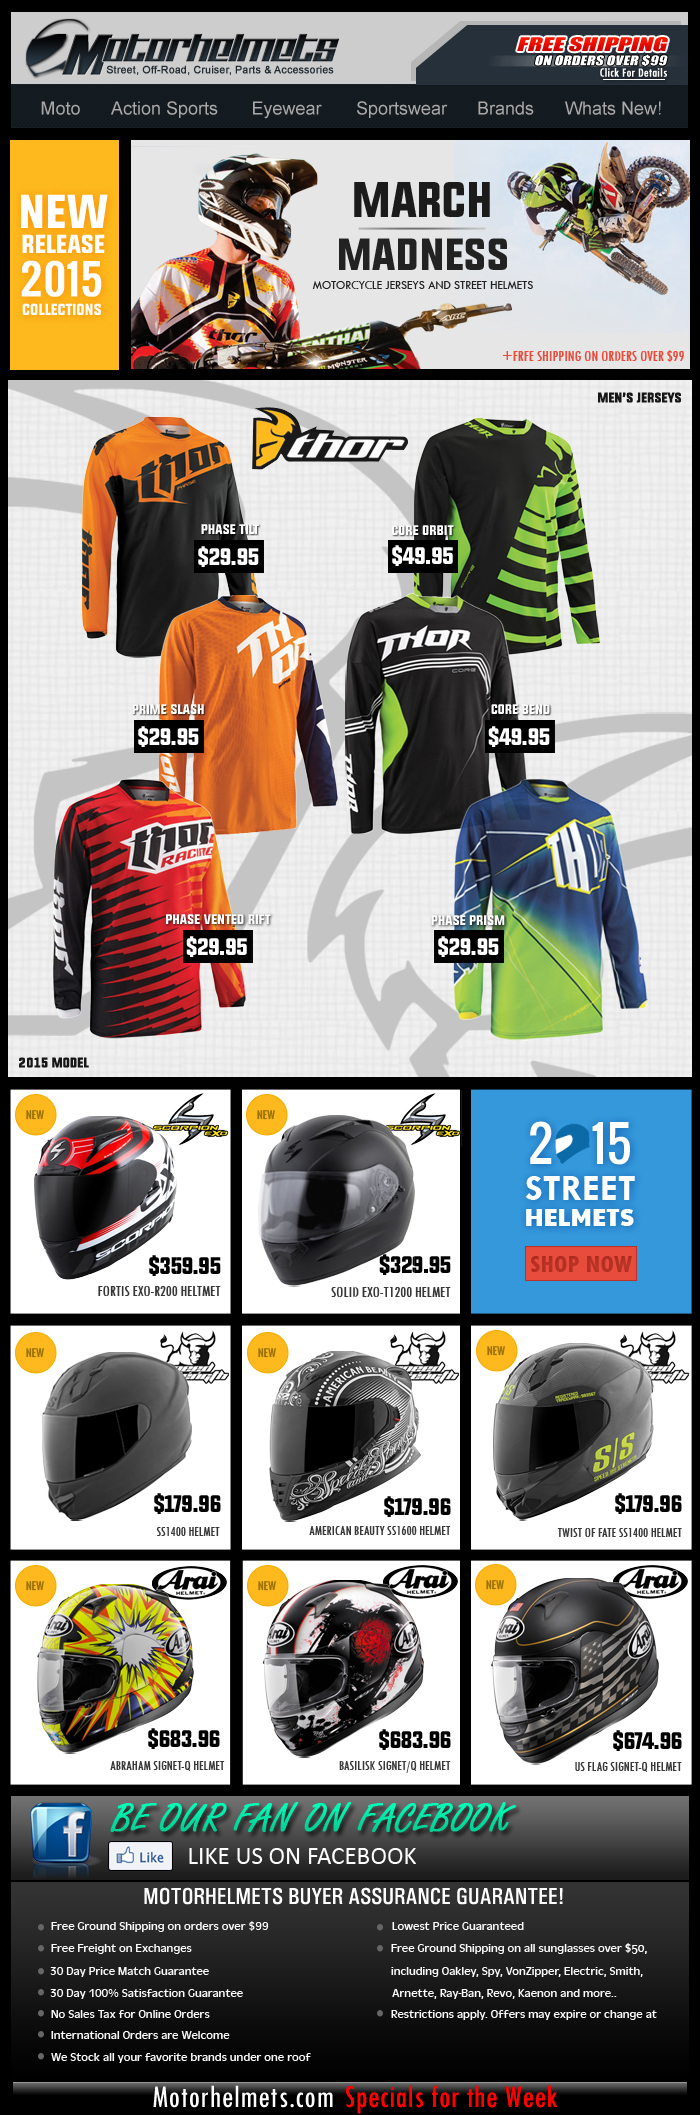 March Madness..New Helmets and Jerseys from ThorMX, Scorpion and Arai!